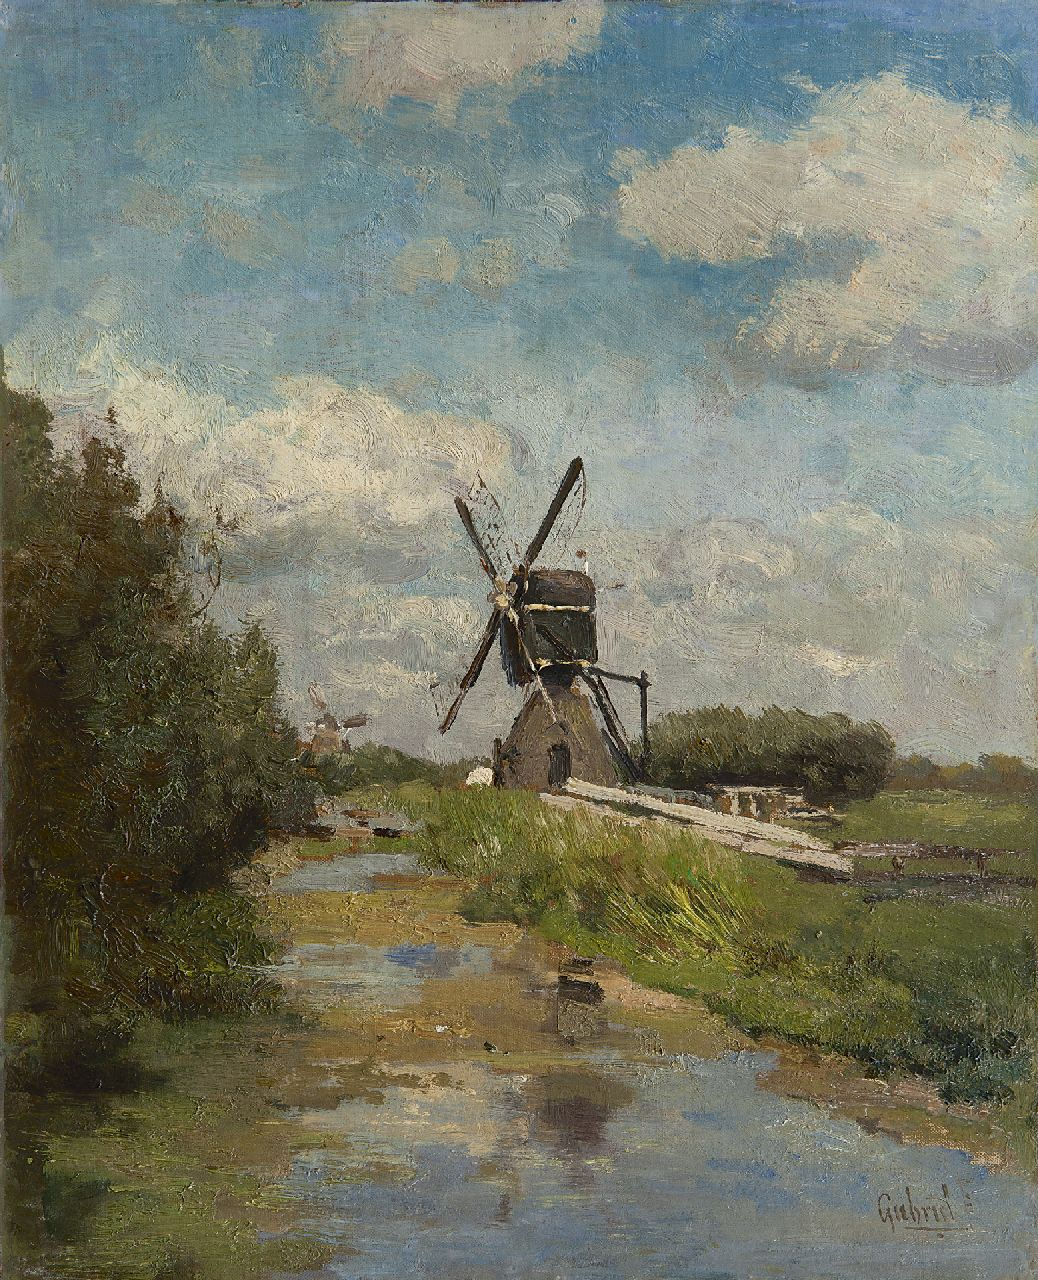 Gabriel P.J.C.  | Paul Joseph Constantin 'Constan(t)' Gabriel, Windmill in the Westbroekpolder near Zoeterwoude, oil on canvas laid down on panel 32.5 x 26.1 cm, signed l.r.